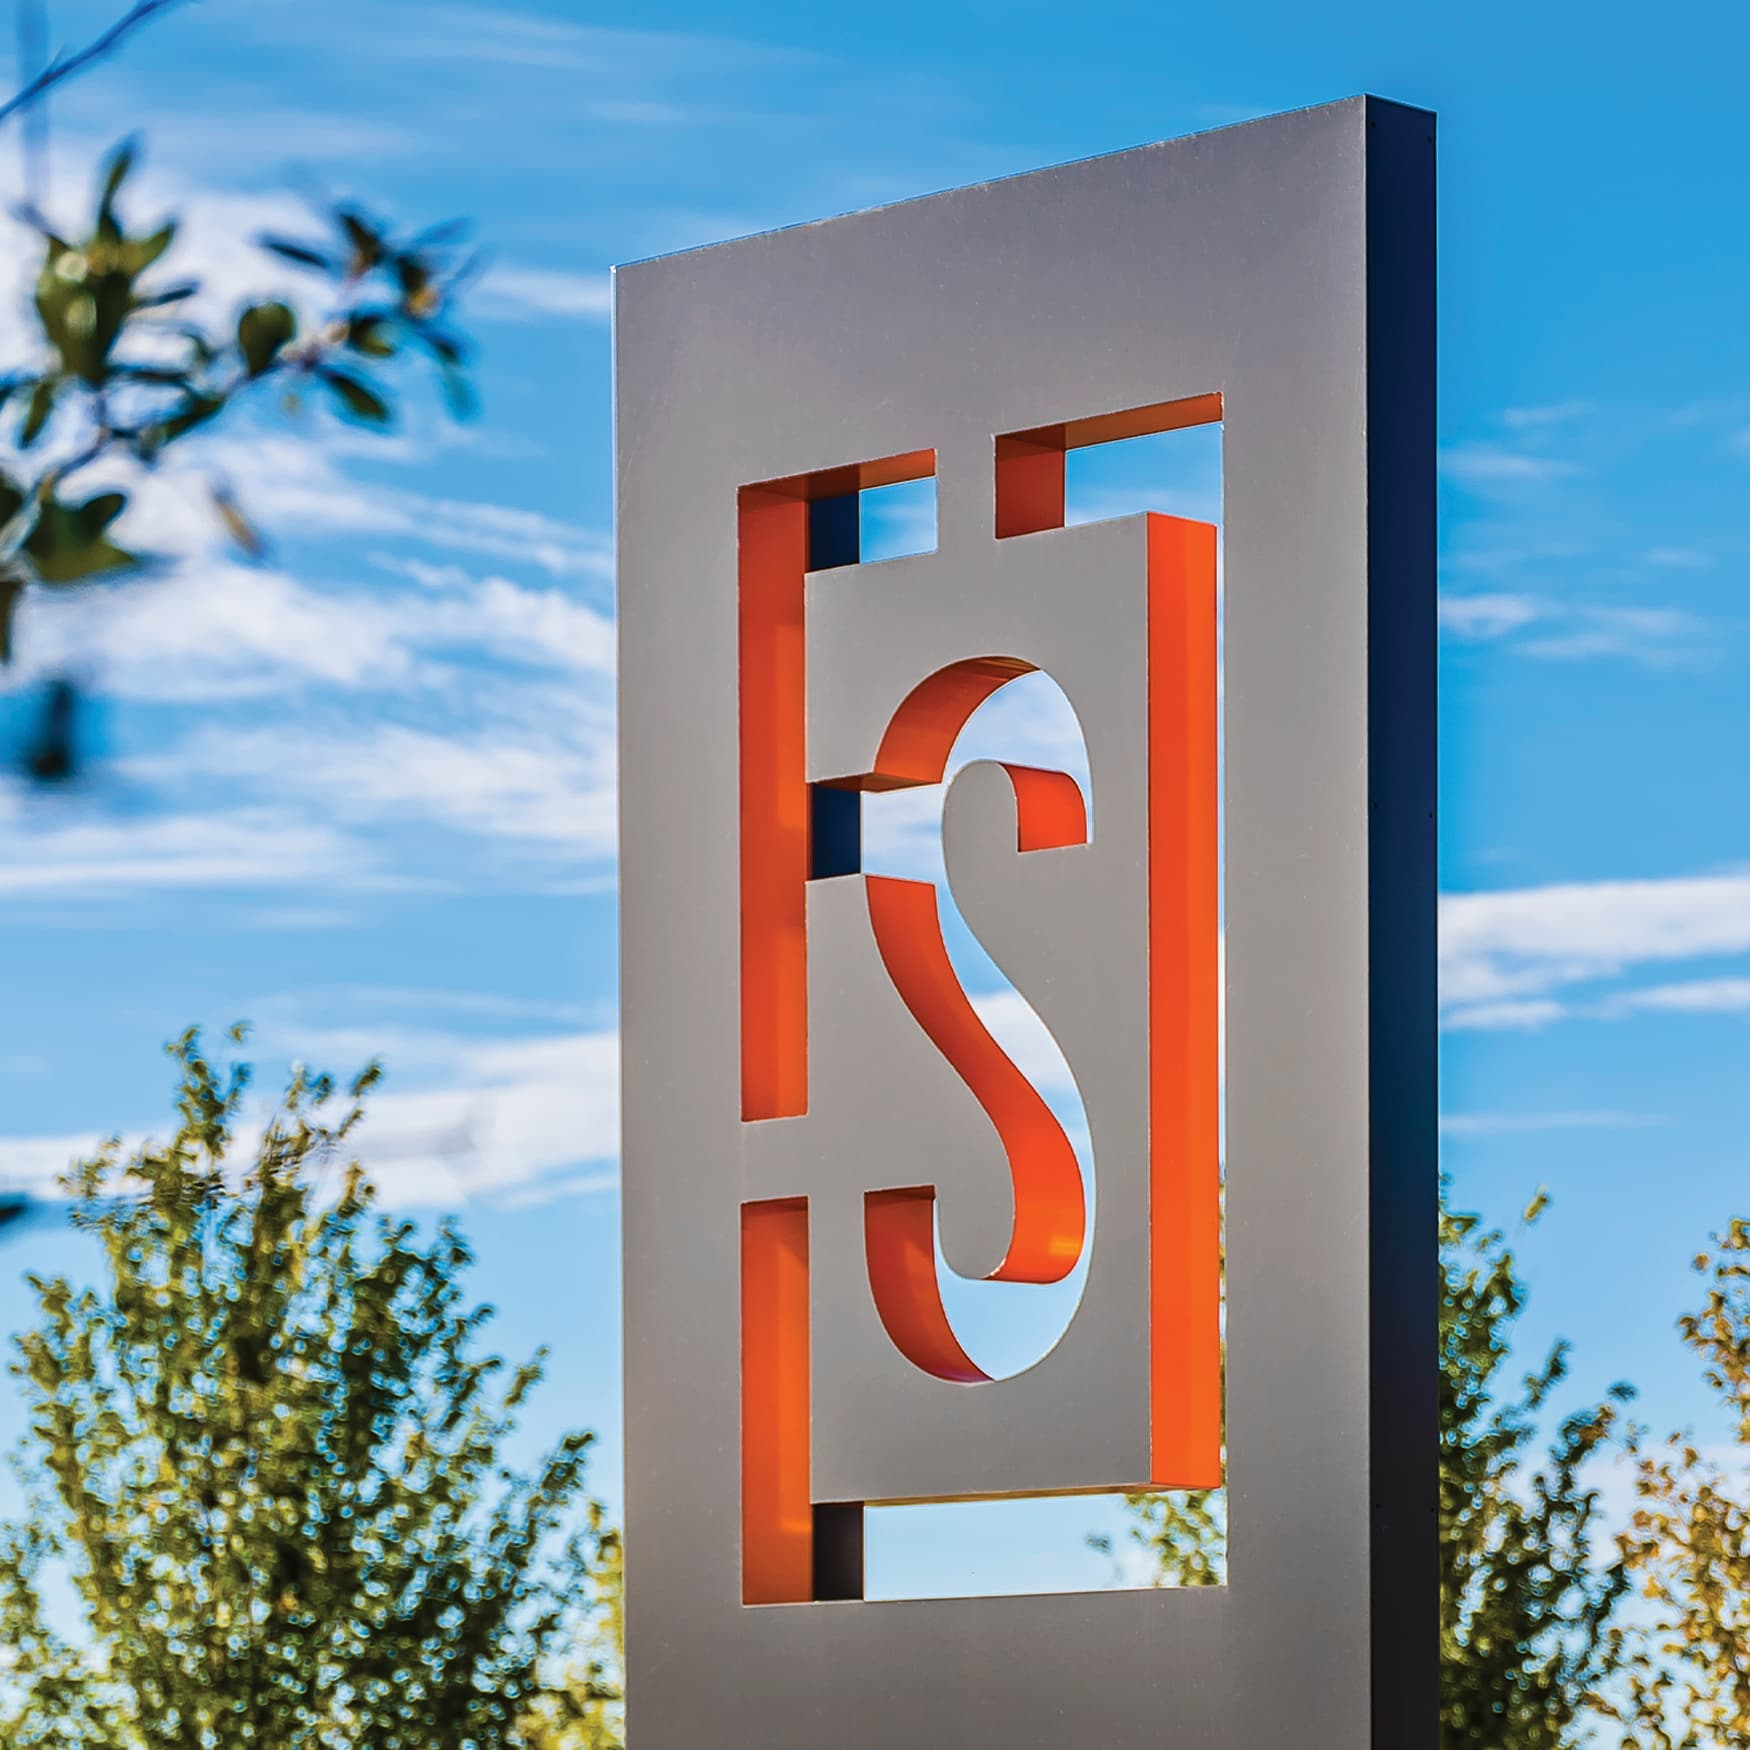 Detail of orange and black monument signage with painted returns at Frisco Station